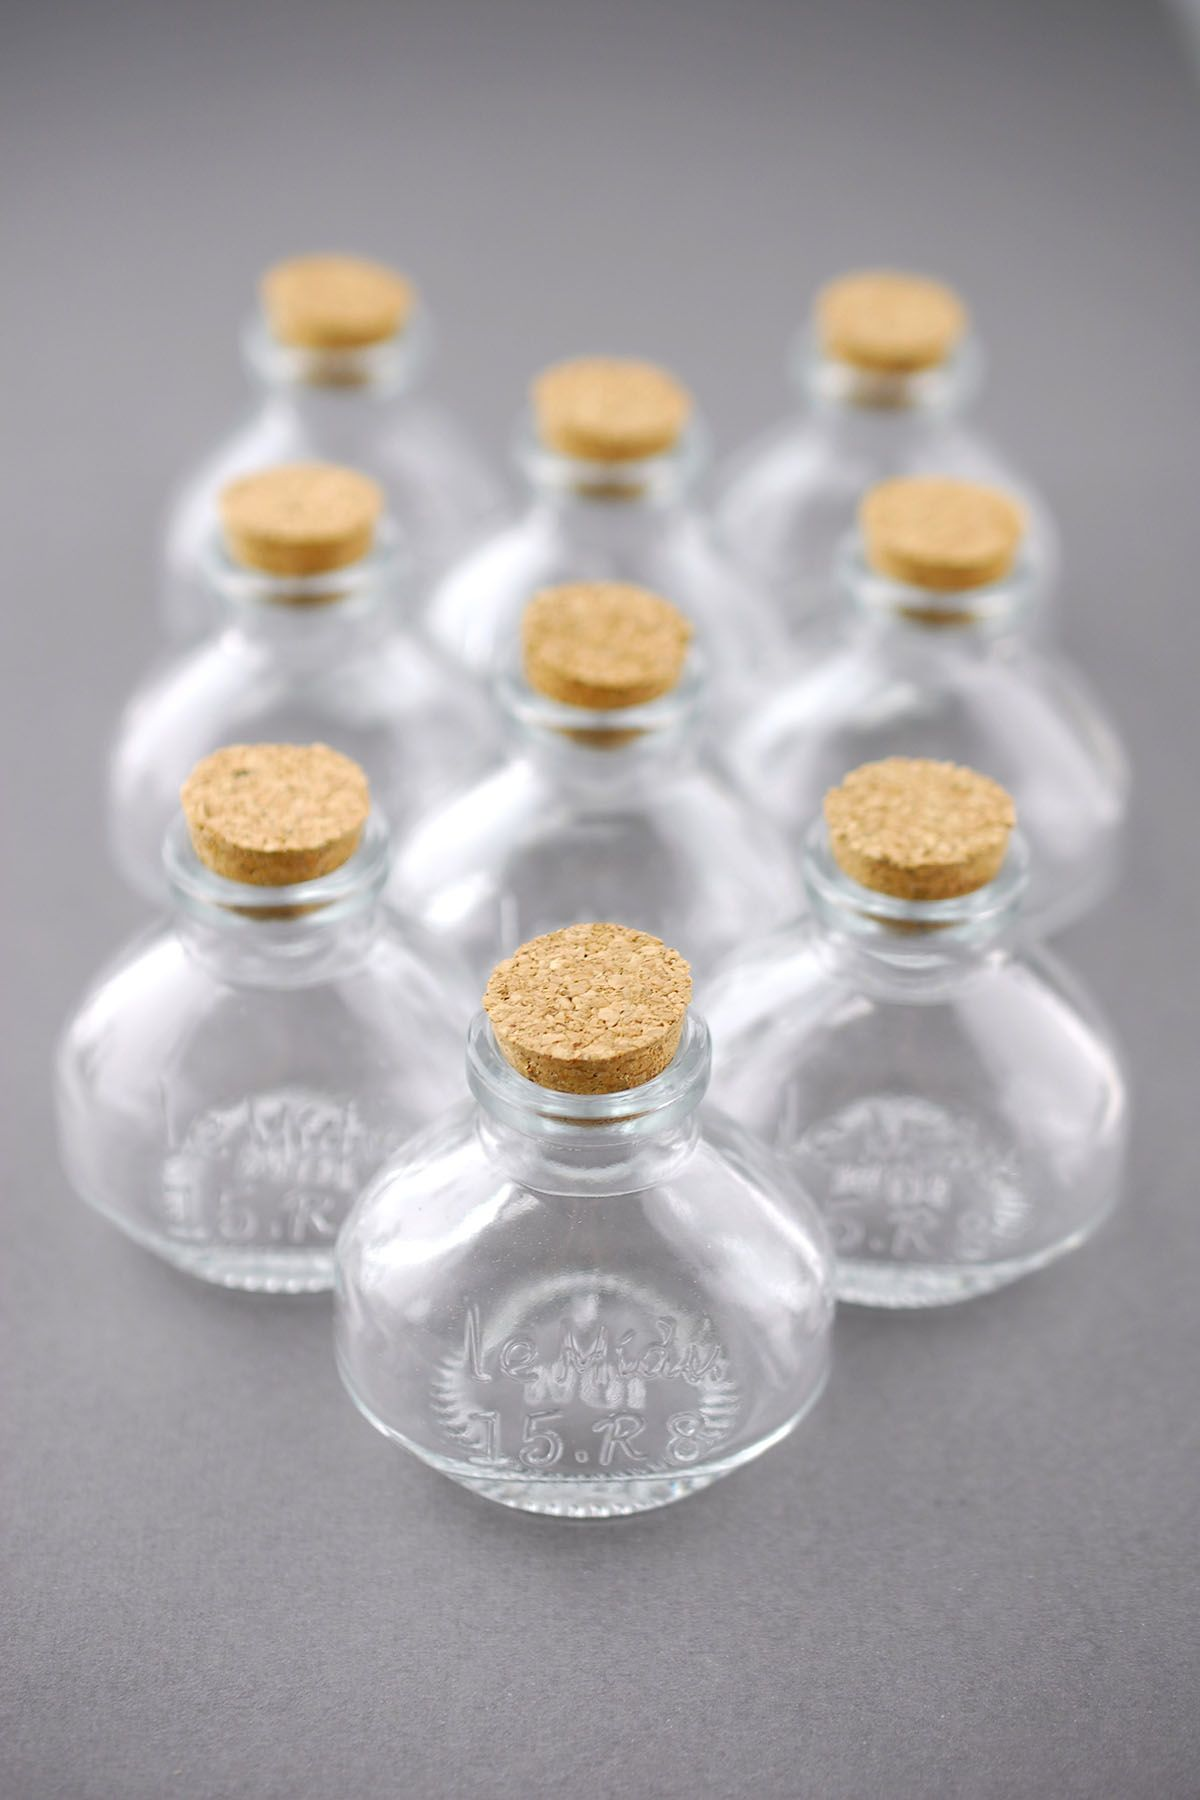 Save On Craftscom Small Bottles And Favor Bags